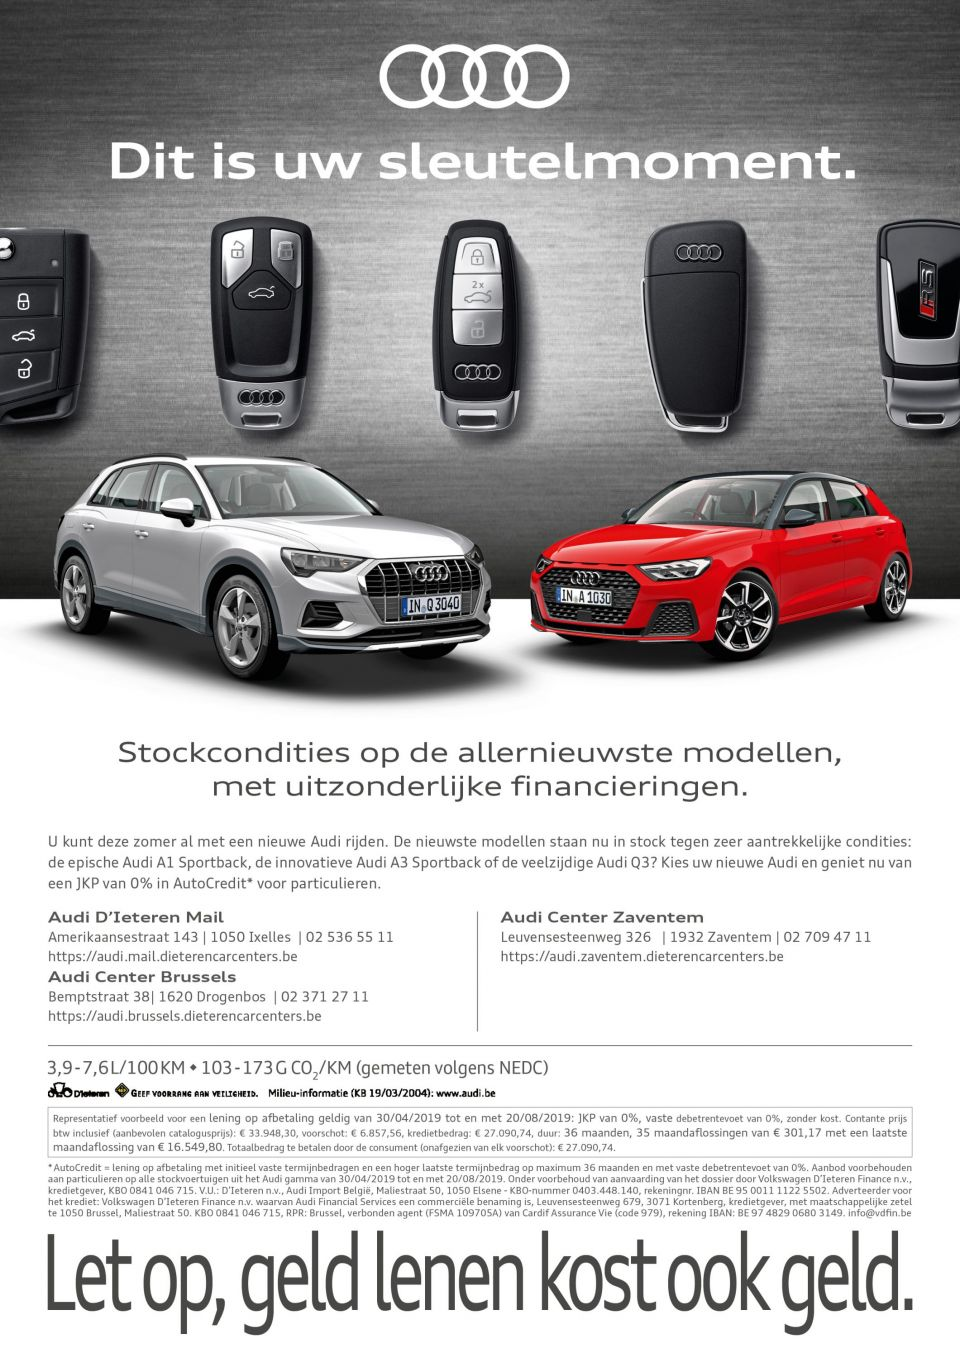 Audi stockcondities